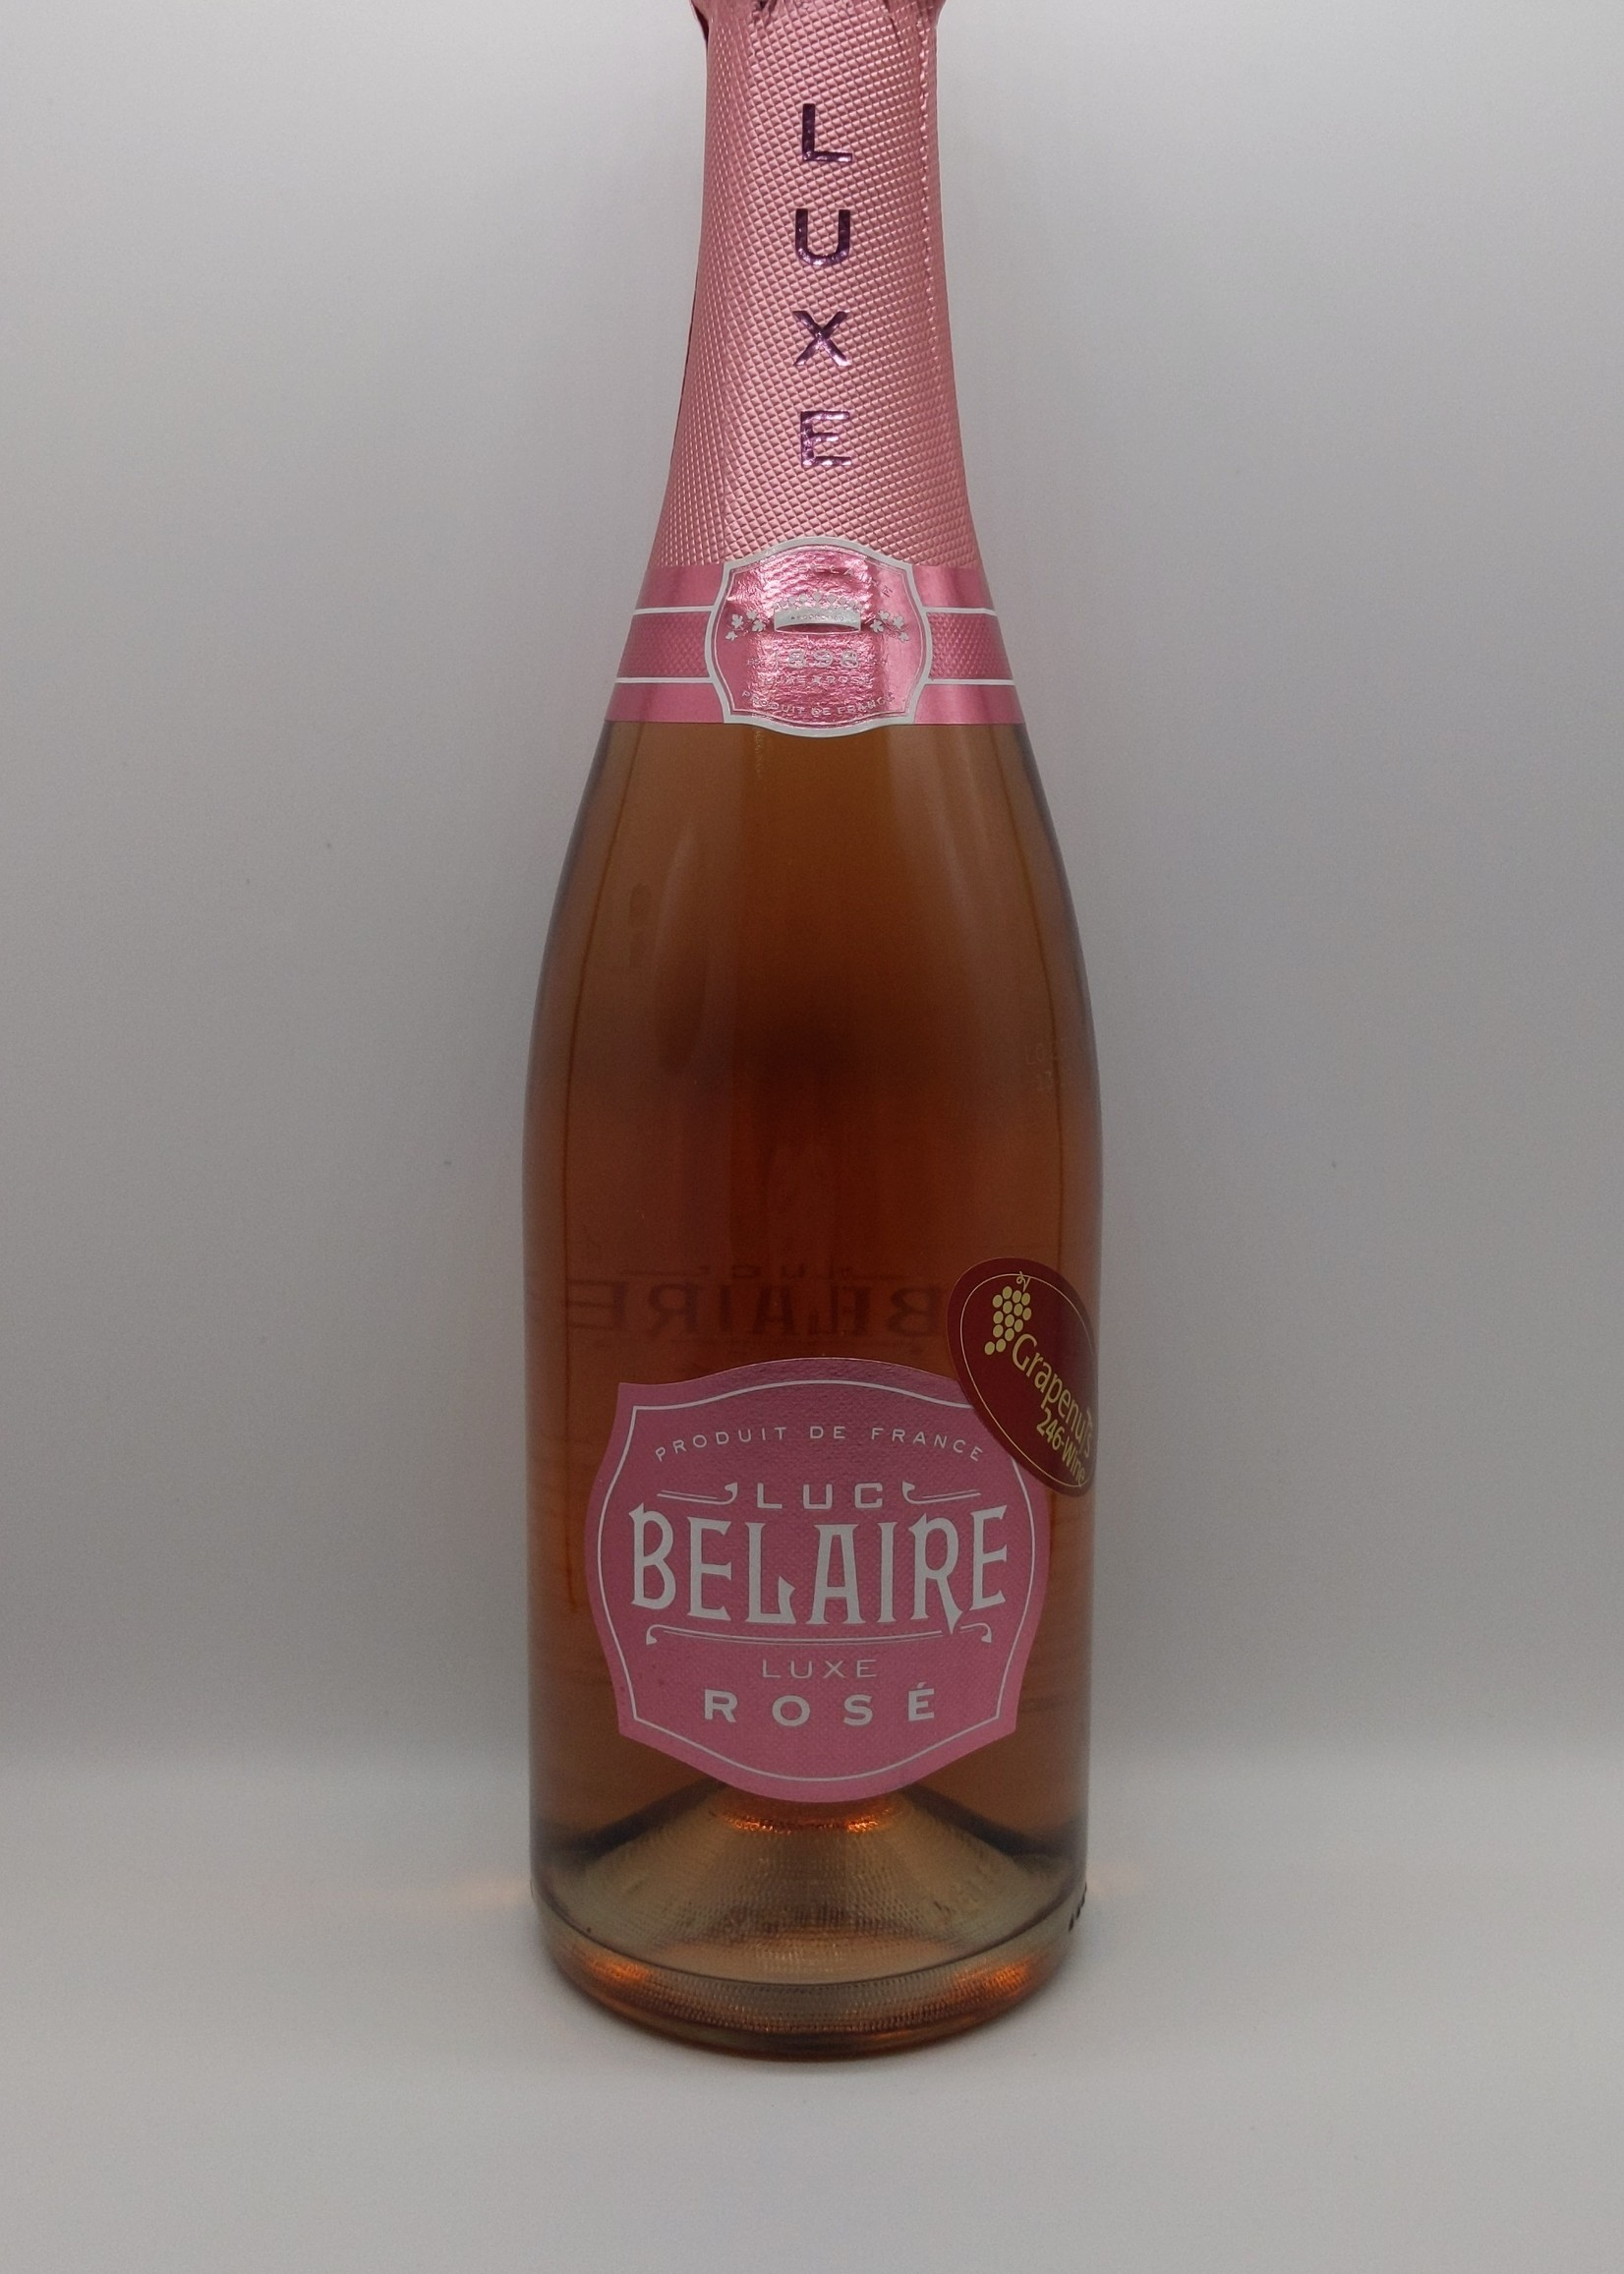 NV LUC BEL AIRE LUXE ROSE 750ml